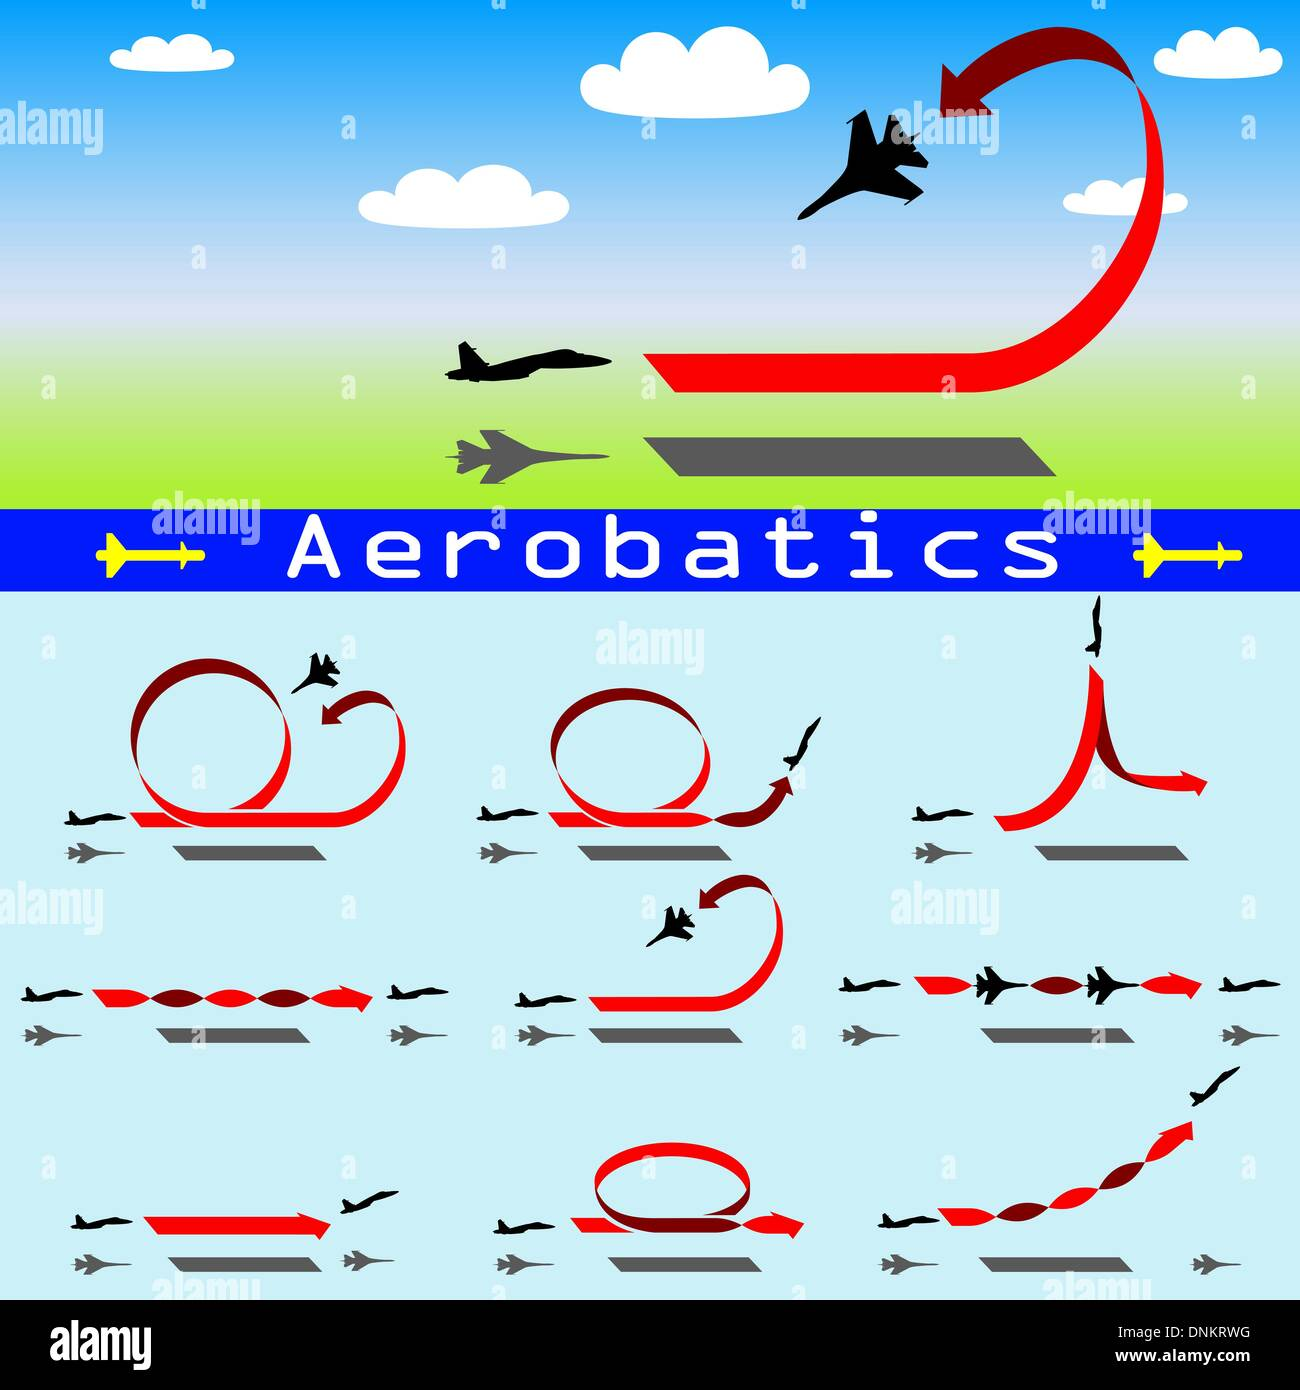 Aerobatics airplane on blue sky background - Stock Vector